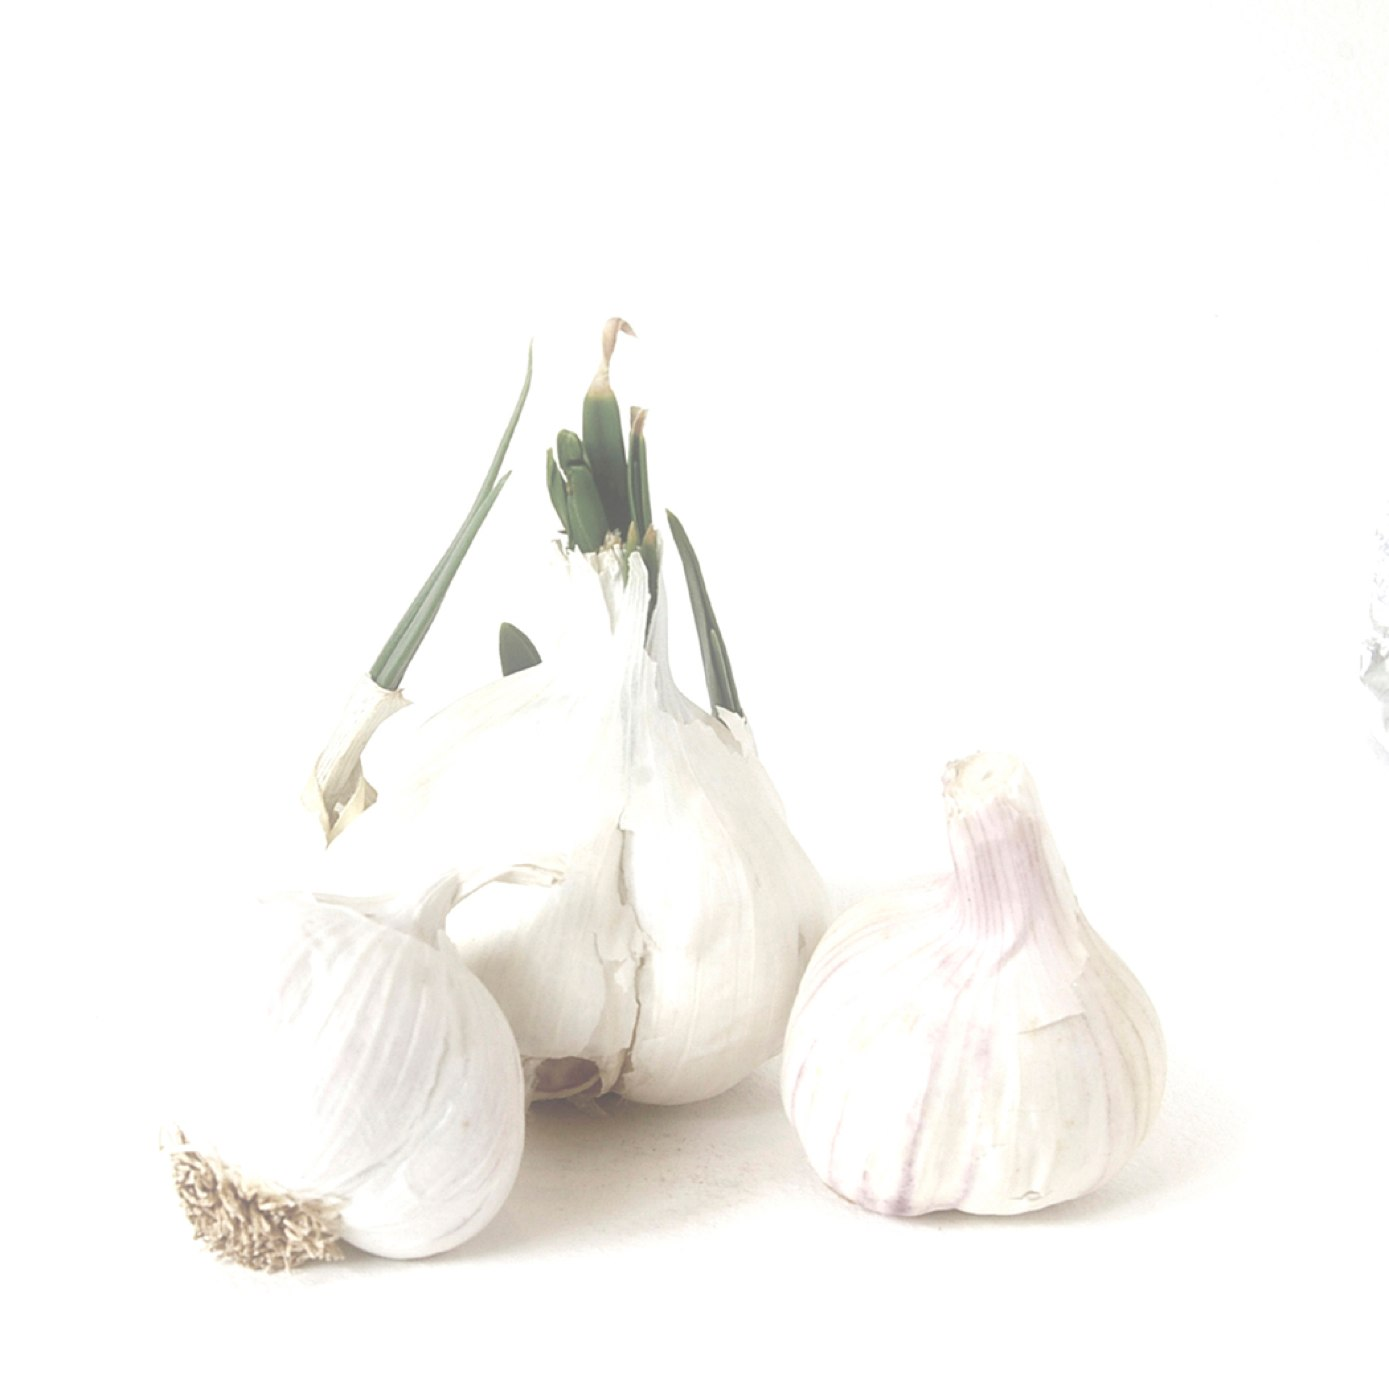 Garlic Trio